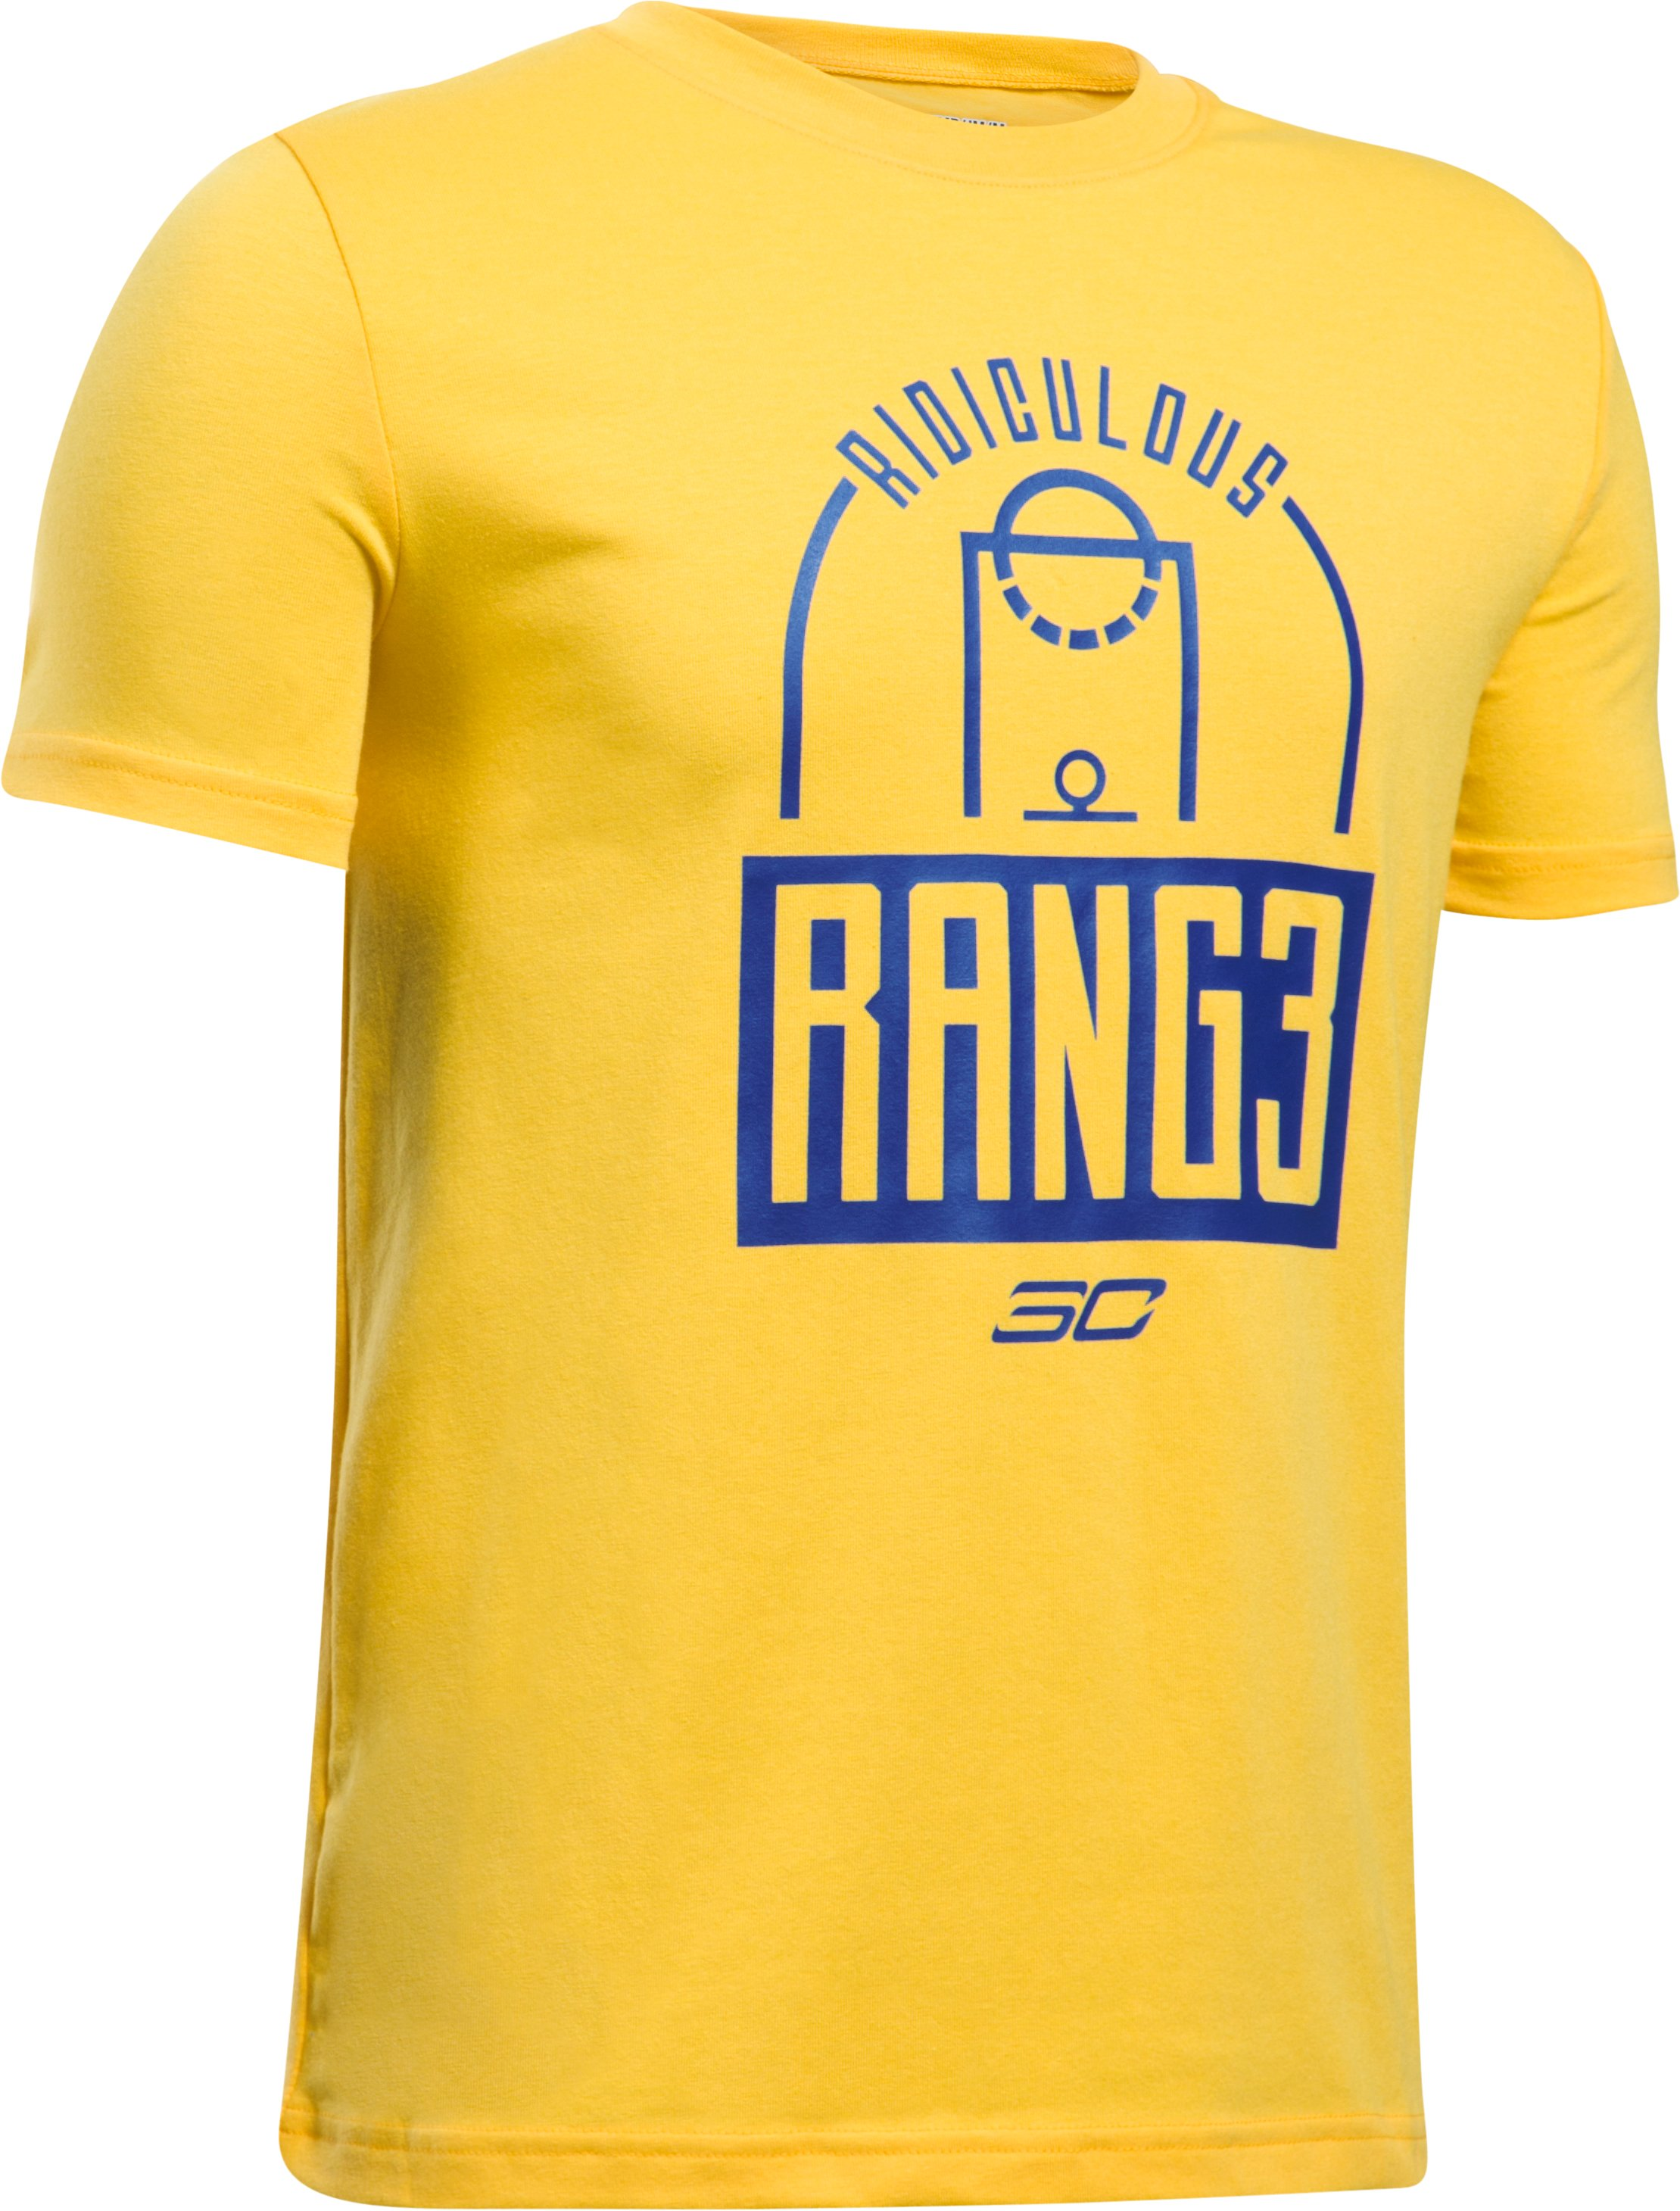 Boys' SC30 Ridiculous Range T-Shirt, Taxi